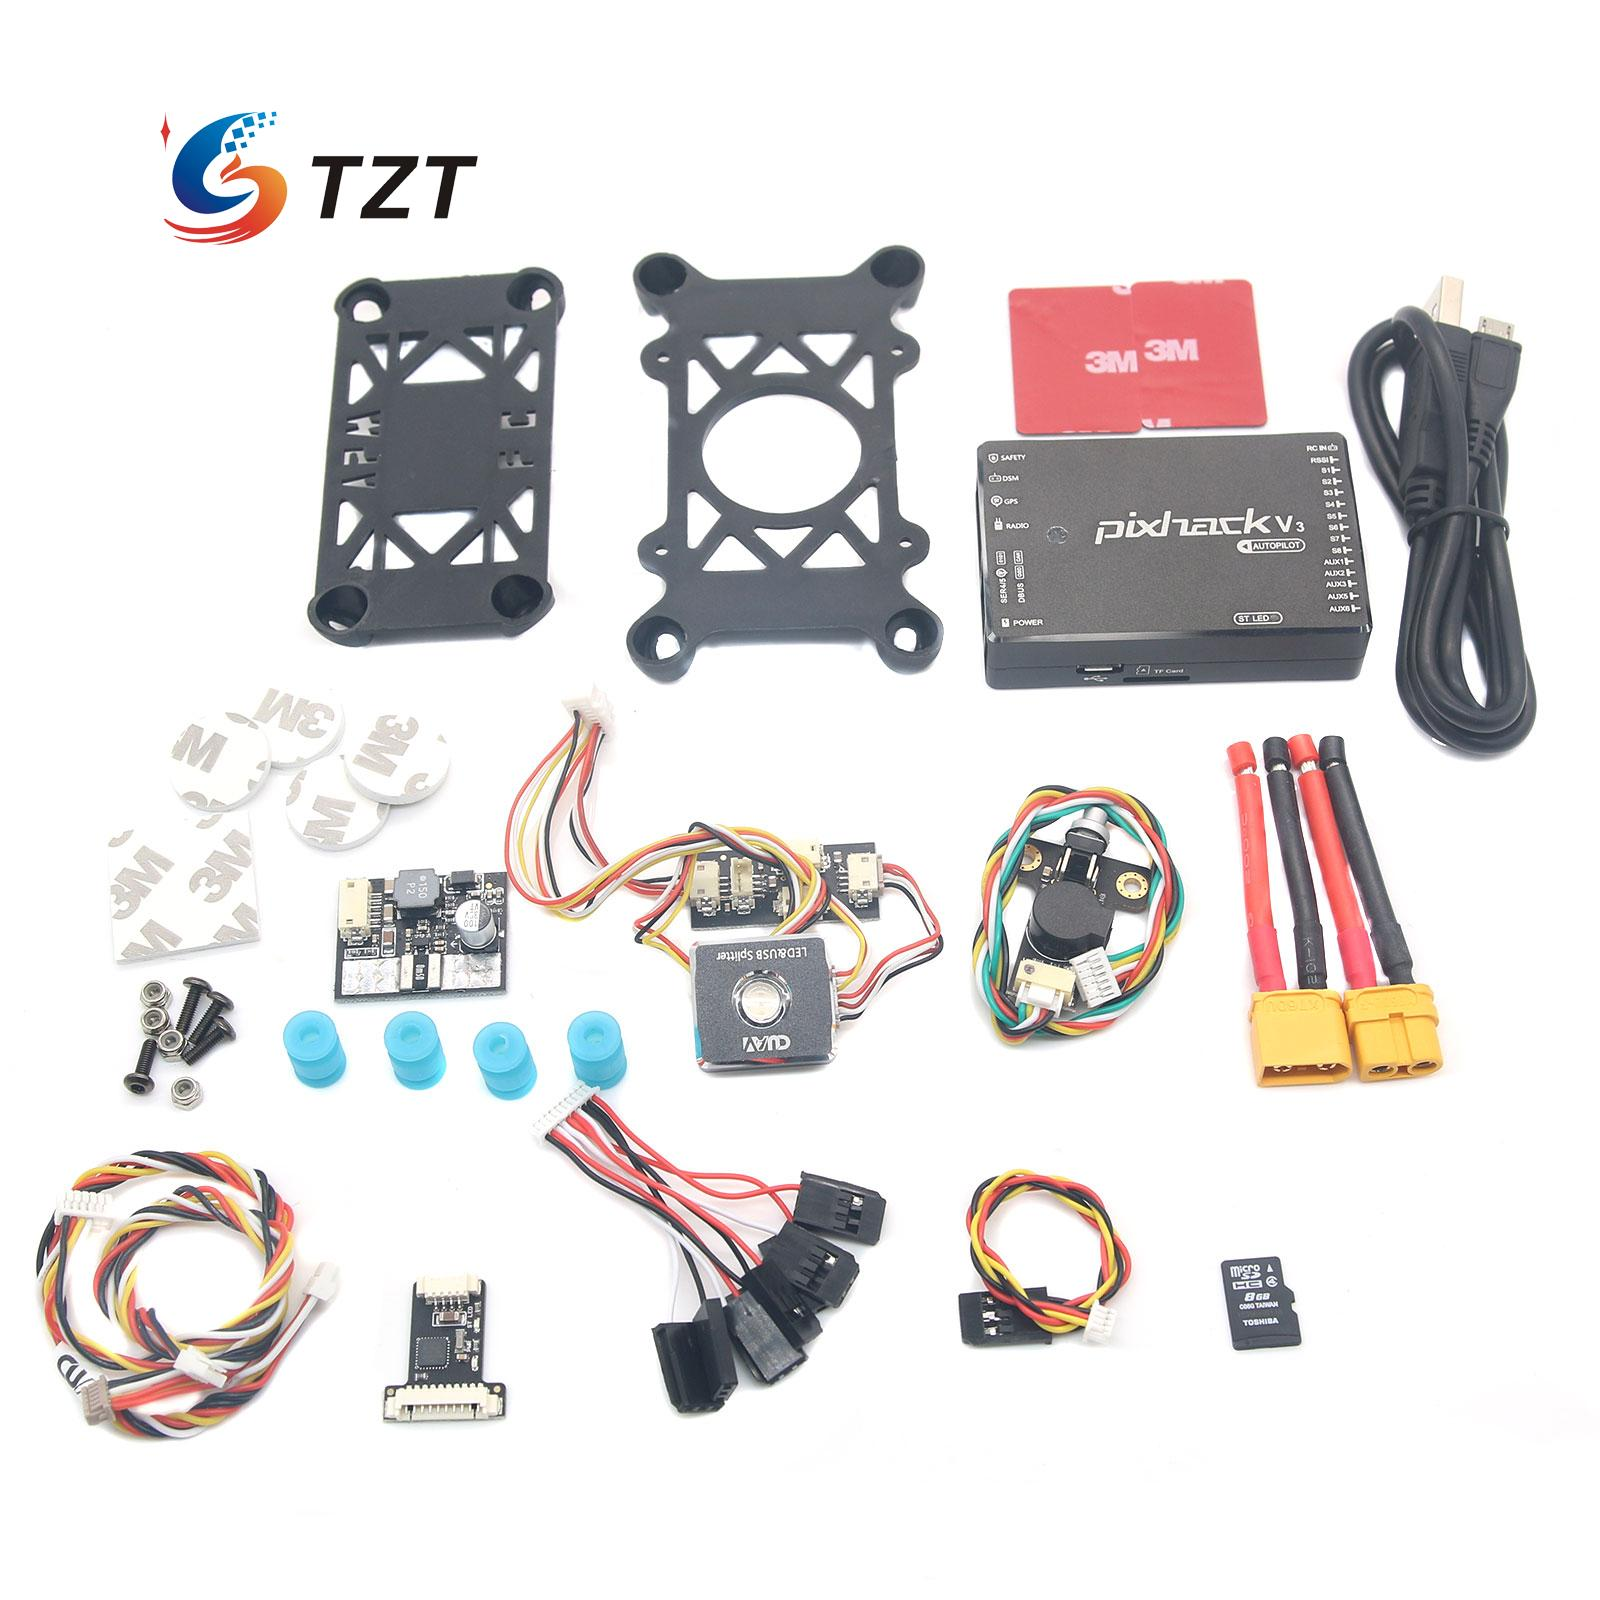 CUAV Pixhack V3 Flight Controller PIX Open Source + M8N GPS for FPV Drone Quadcopter Helicopter original naza gps for naza m v2 flight controller with antenna stand holder free shipping